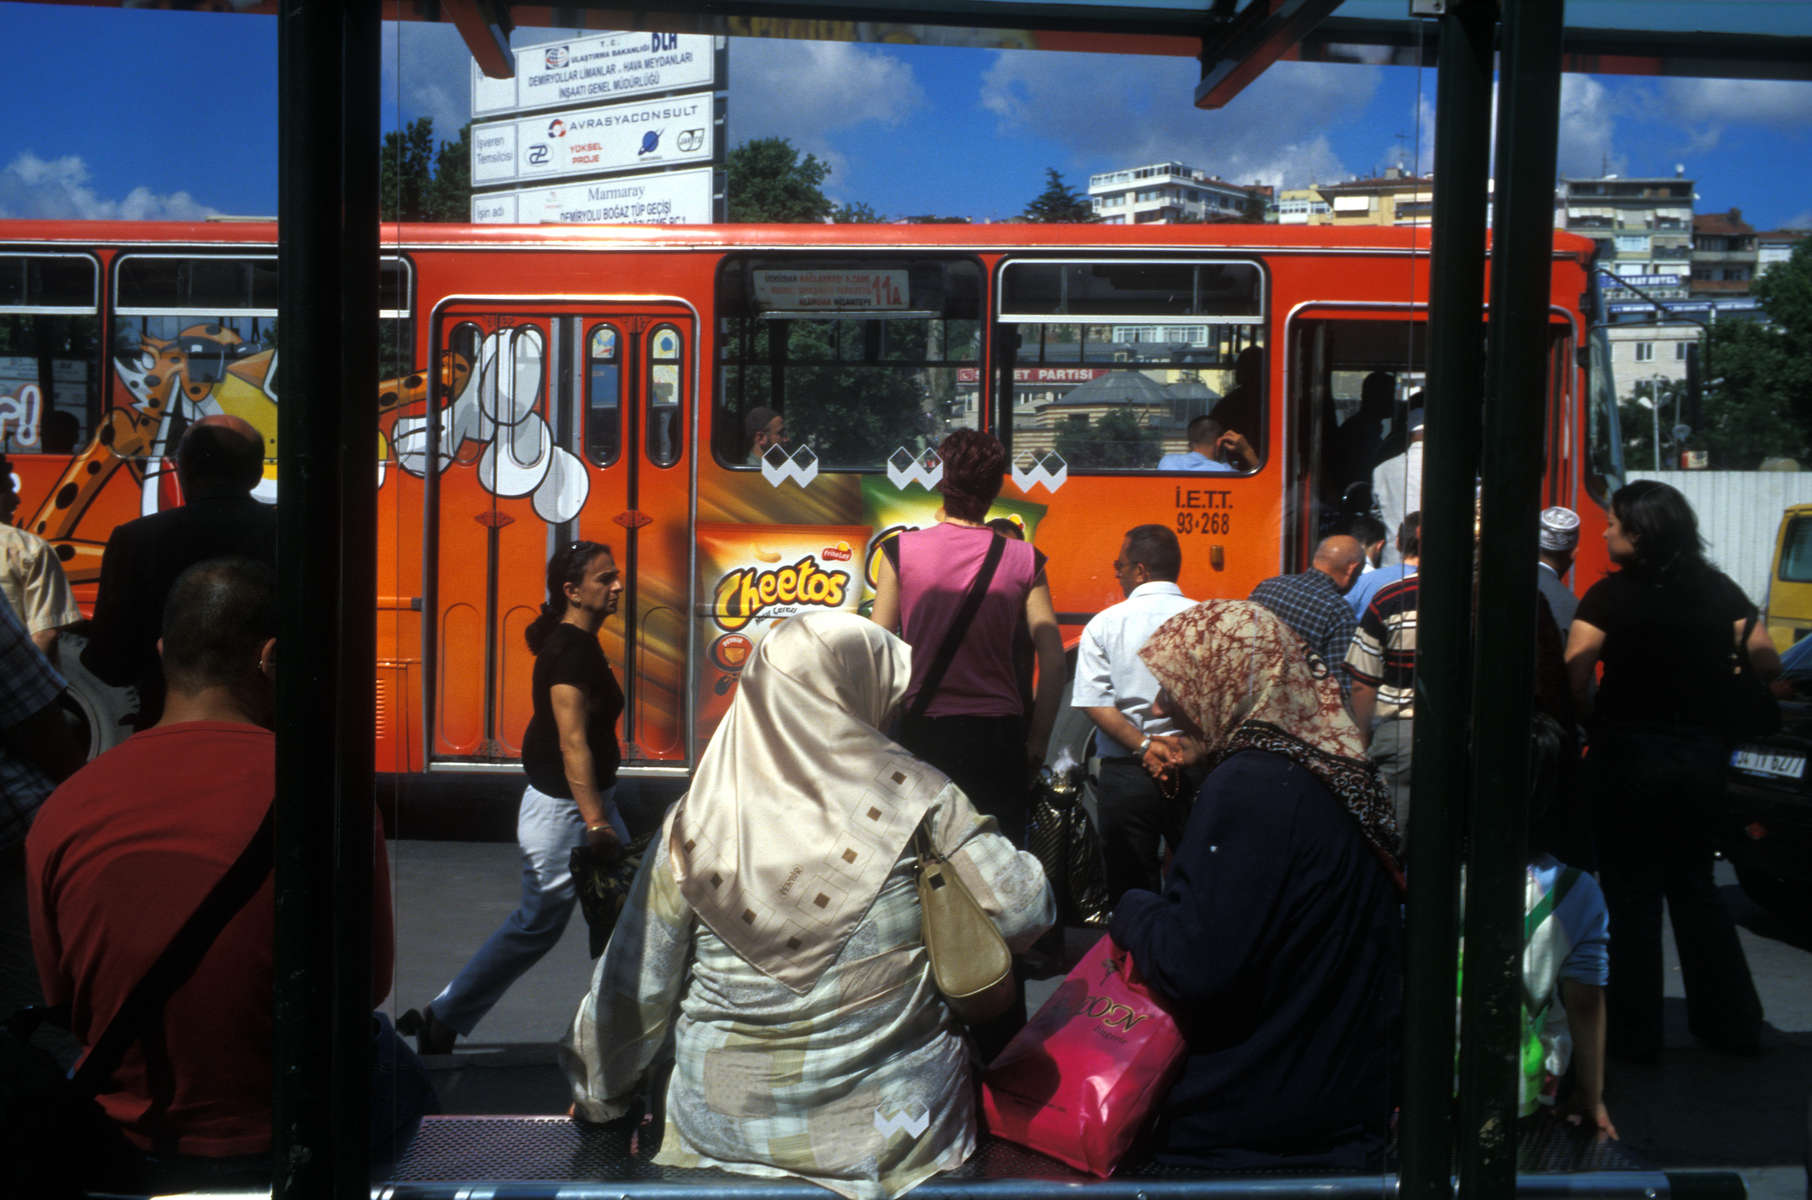 Religiously observant Muslim women in head scarves and pedestrians in Western dress waiting a bus stop illustrate the many ways the secular and sectarian intersect in Istanbul. June, 2005.